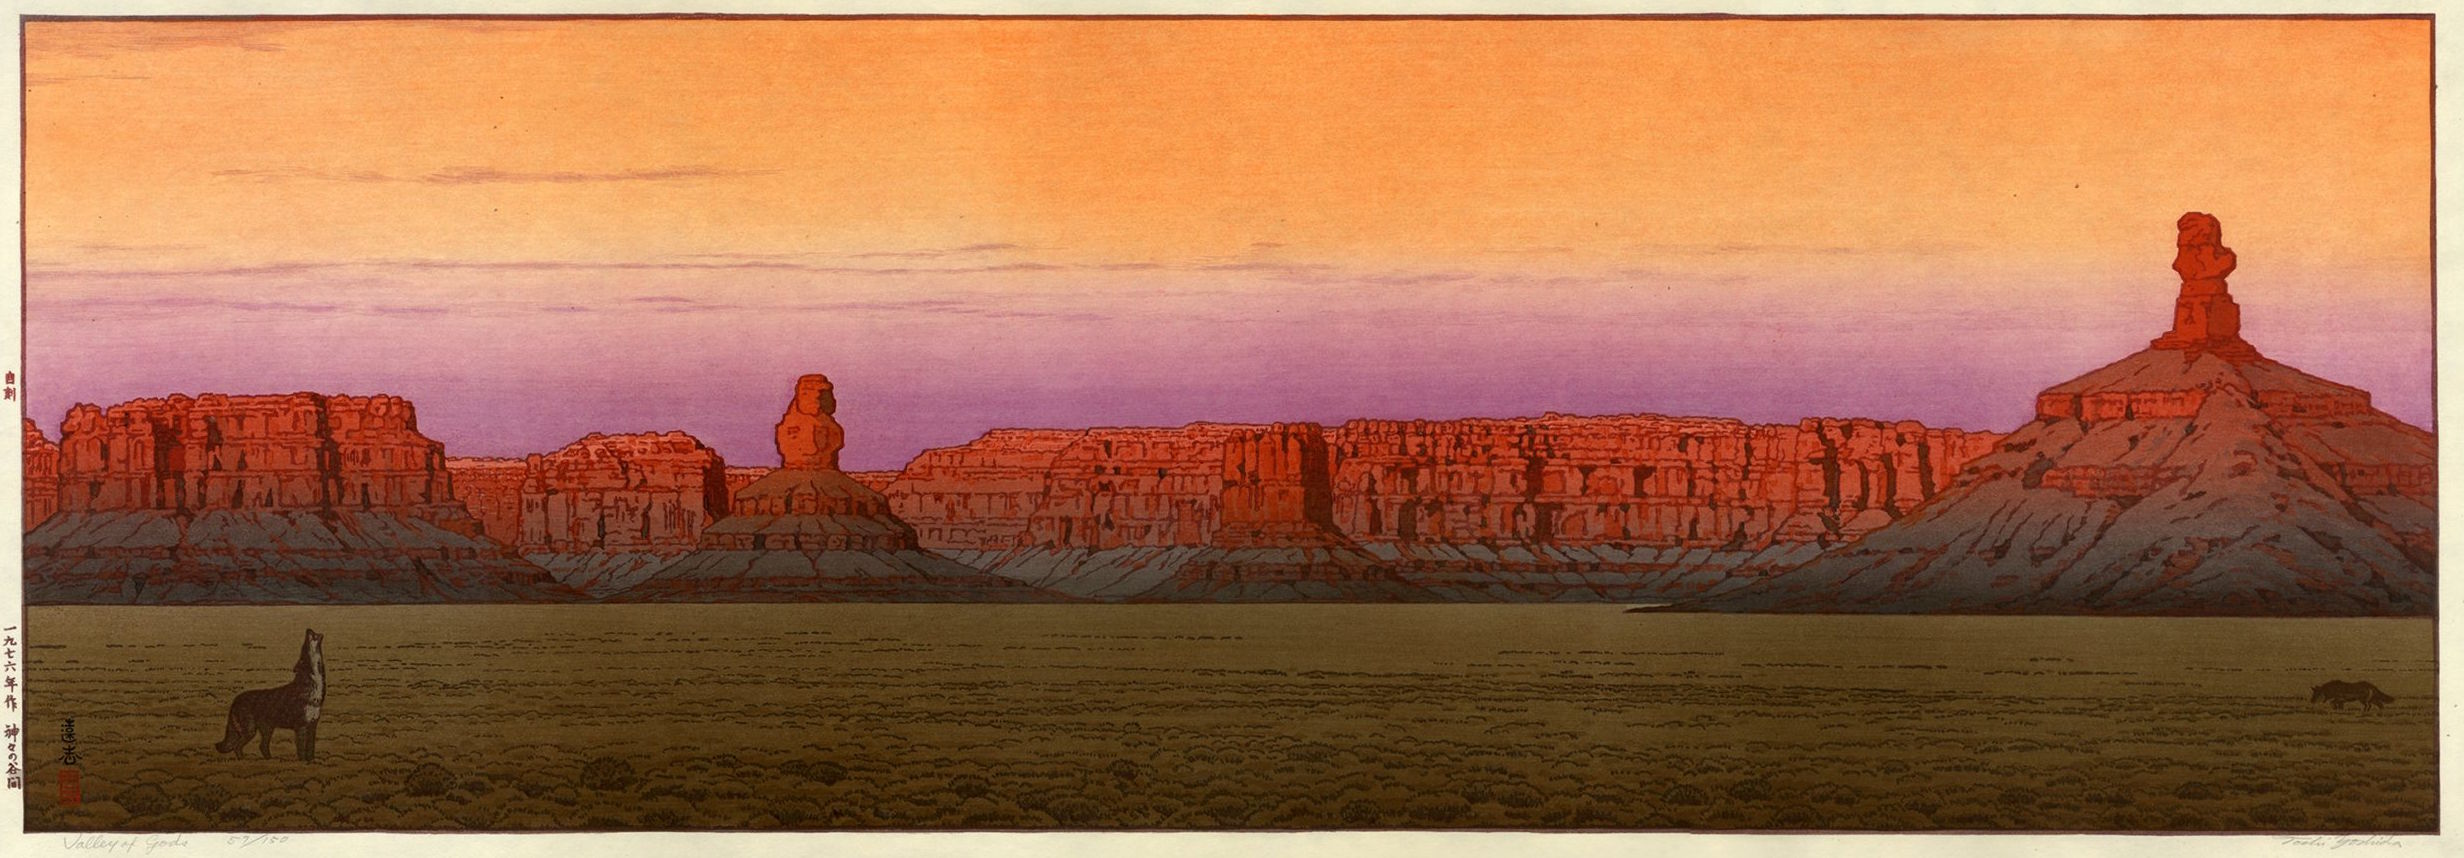 "Yoshida Tōshi ""Valley of the Gods"" 1976 main image"